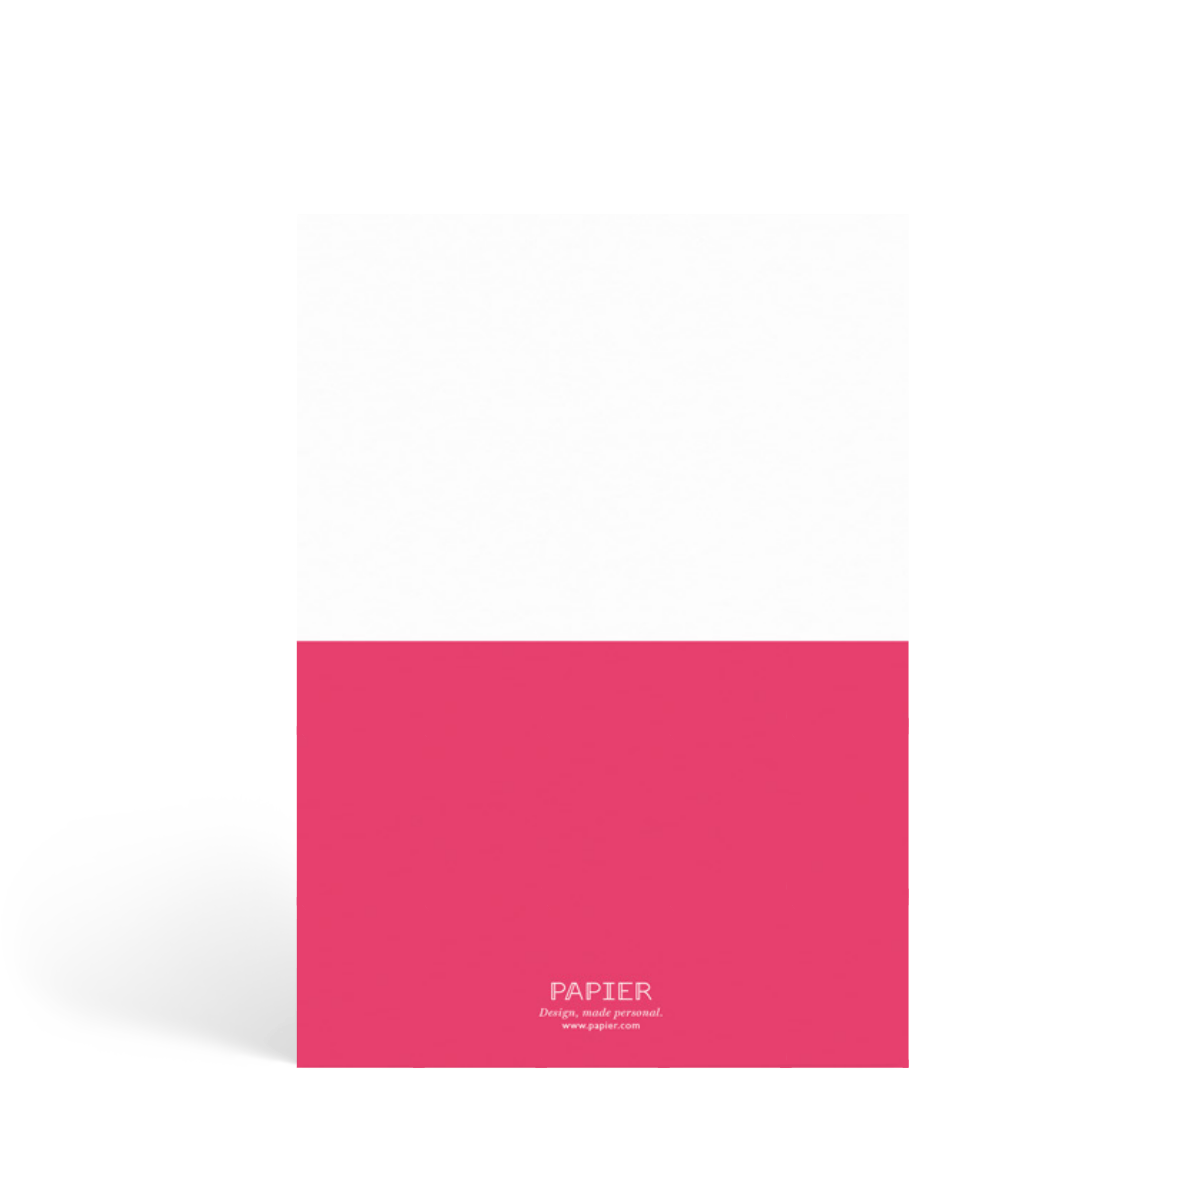 Https%3a%2f%2fwww.papier.com%2fproduct image%2f64470%2f5%2fdemi hot pink 15145 arriere 1548970319.png?ixlib=rb 1.1